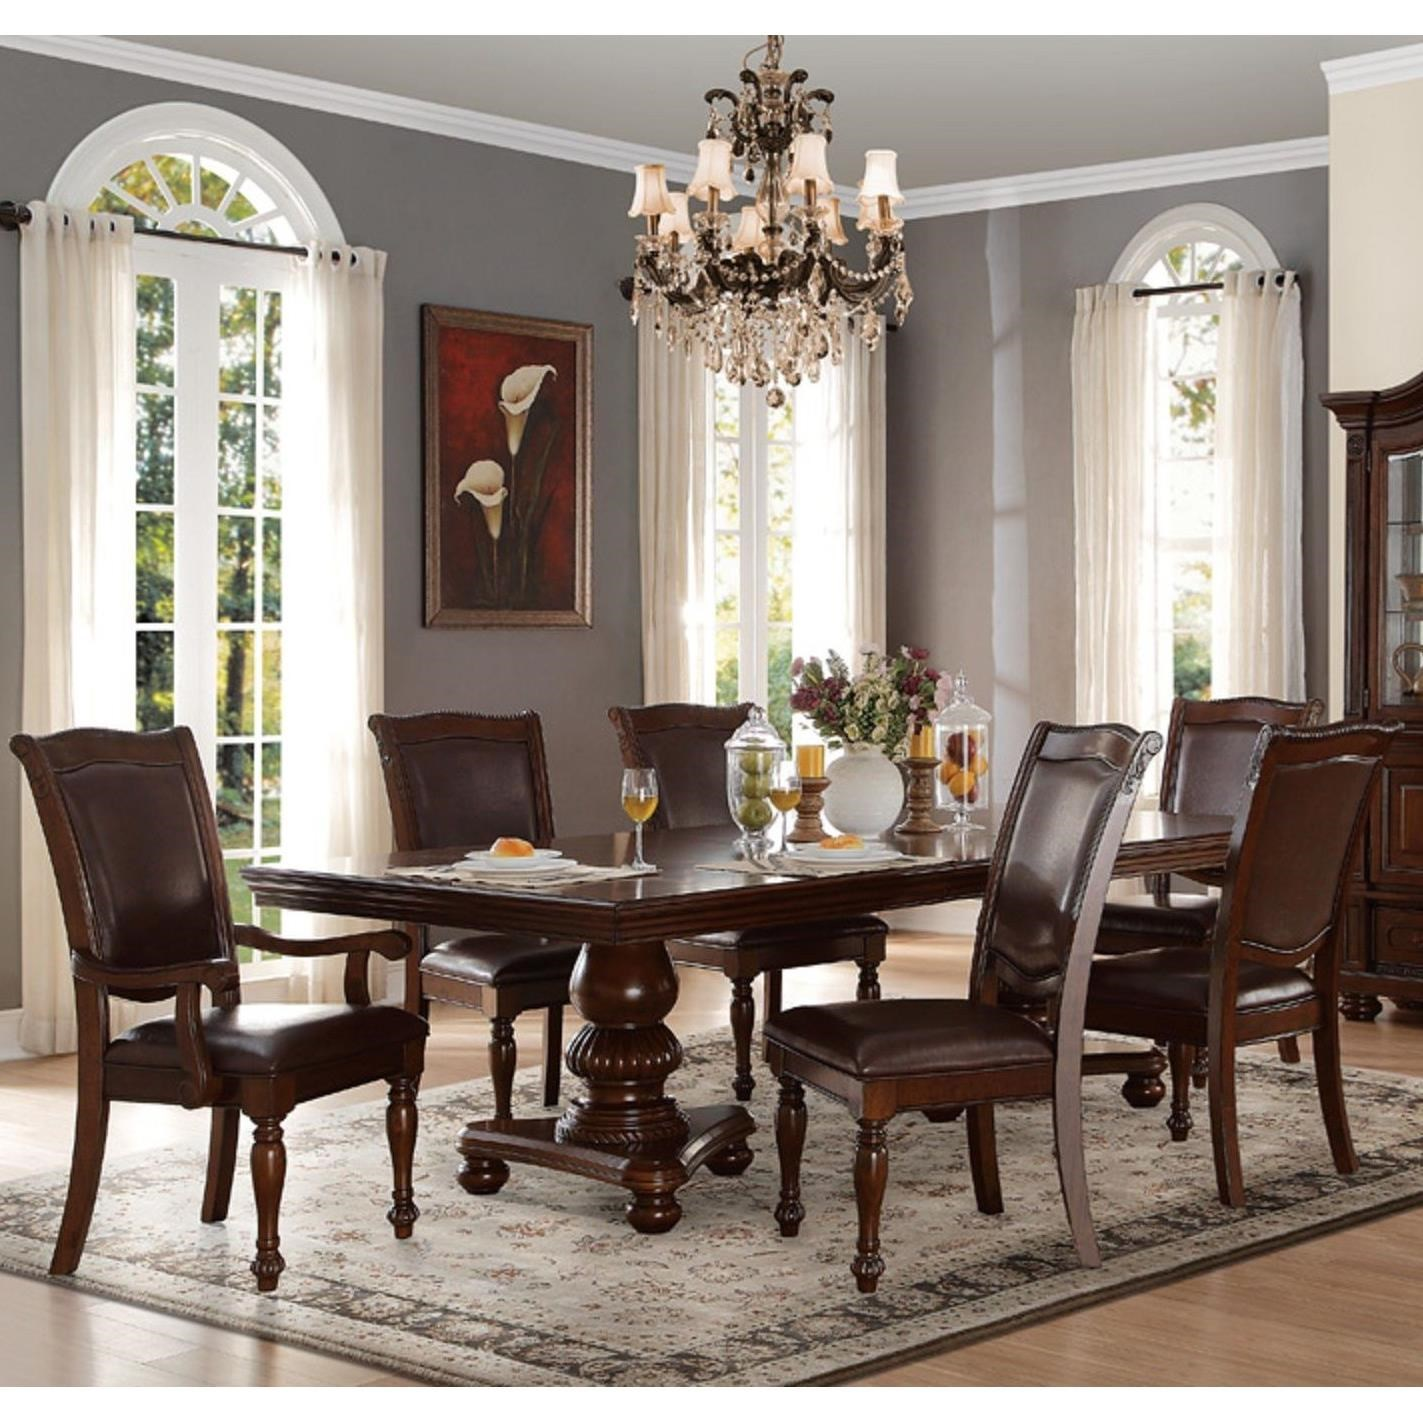 Lordsburg Table and Chair Set by Homelegance at Rife's Home Furniture